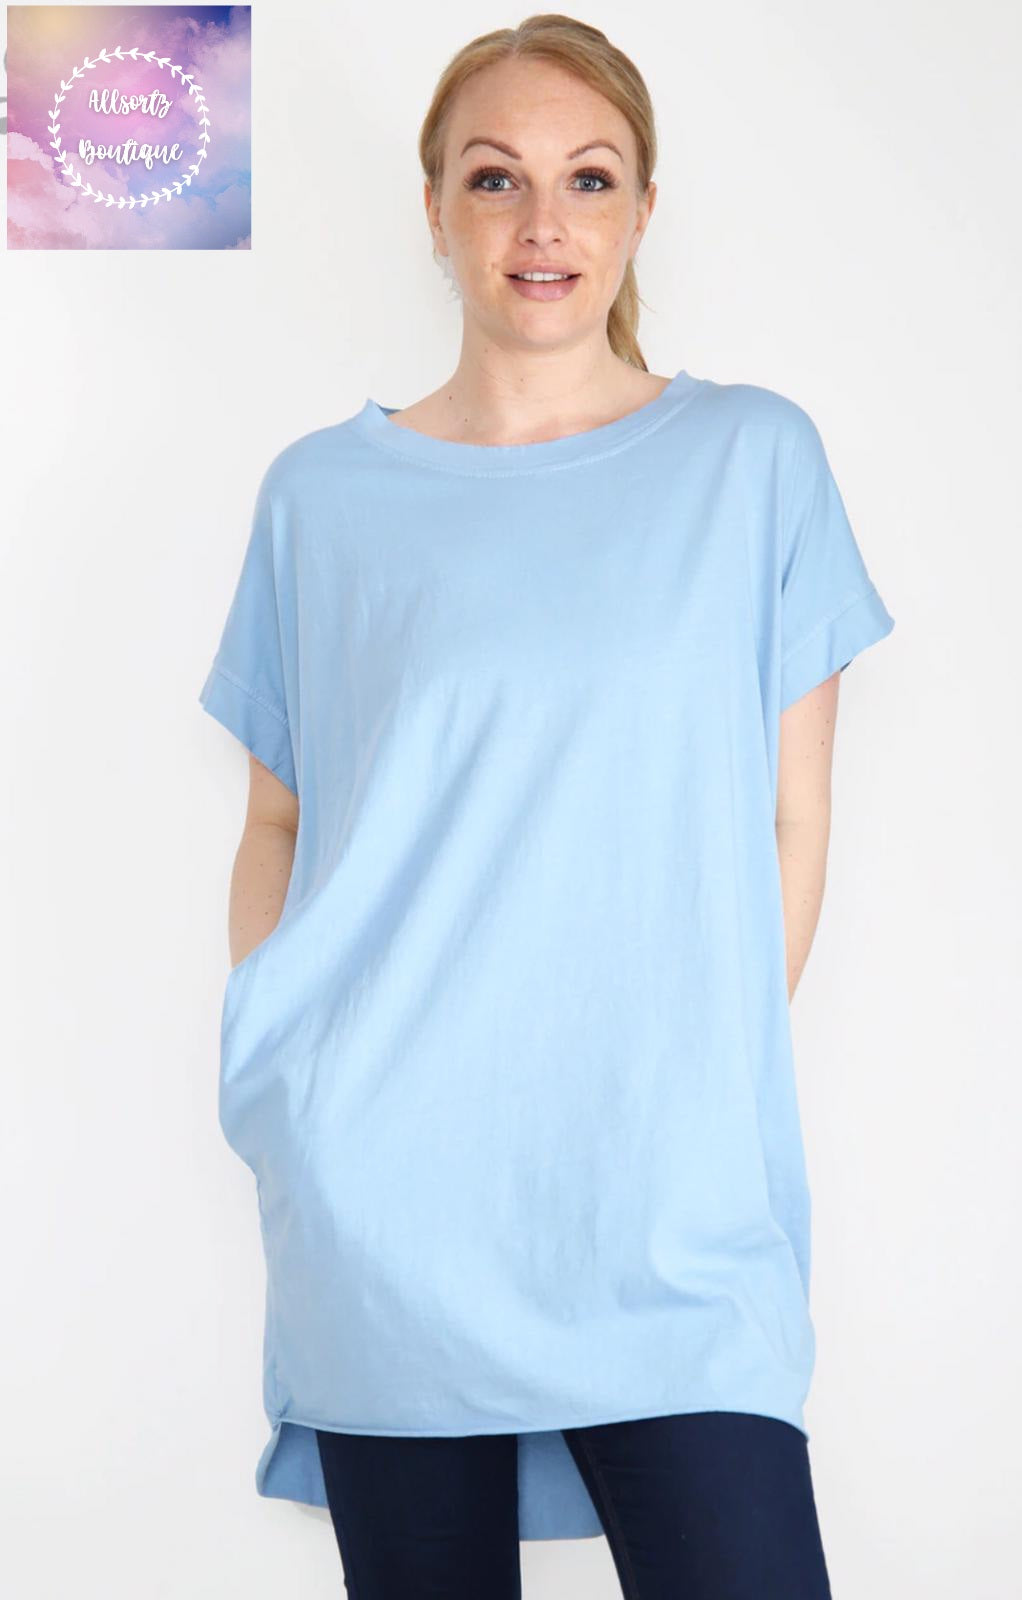 Cotton basic tunic with pcokets. 8 colours